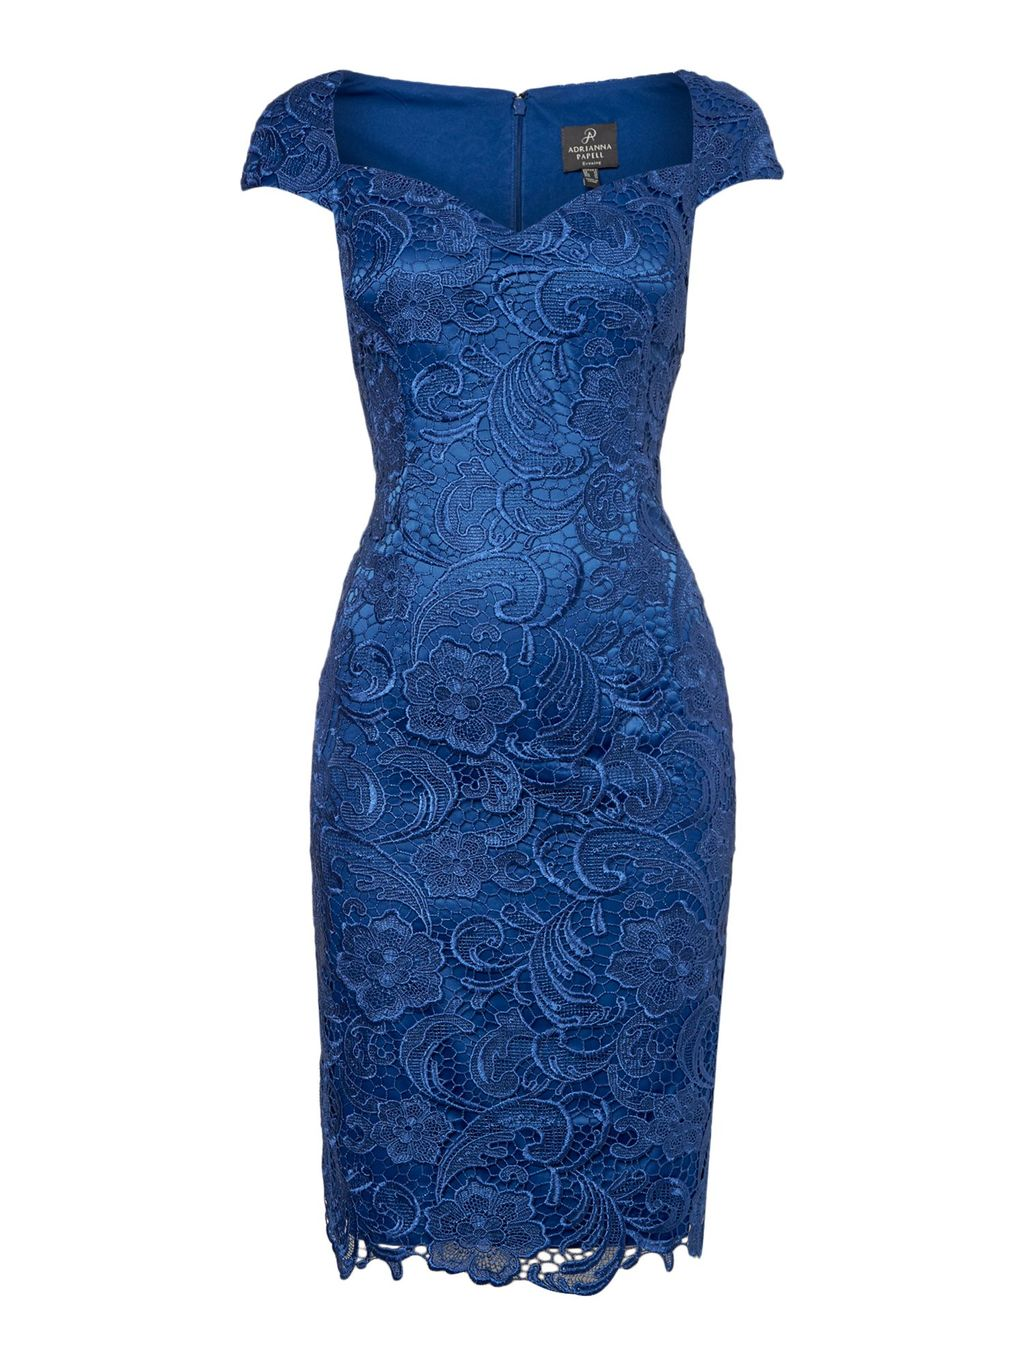 All Over Lace Shift Dress With Sweetheart Neck, Blue - style: shift; sleeve style: capped; fit: tailored/fitted; pattern: plain; neckline: sweetheart; predominant colour: royal blue; occasions: evening, occasion; length: just above the knee; fibres: polyester/polyamide - 100%; sleeve length: short sleeve; texture group: lace; pattern type: fabric; pattern size: standard; embellishment: lace; season: s/s 2016; wardrobe: event